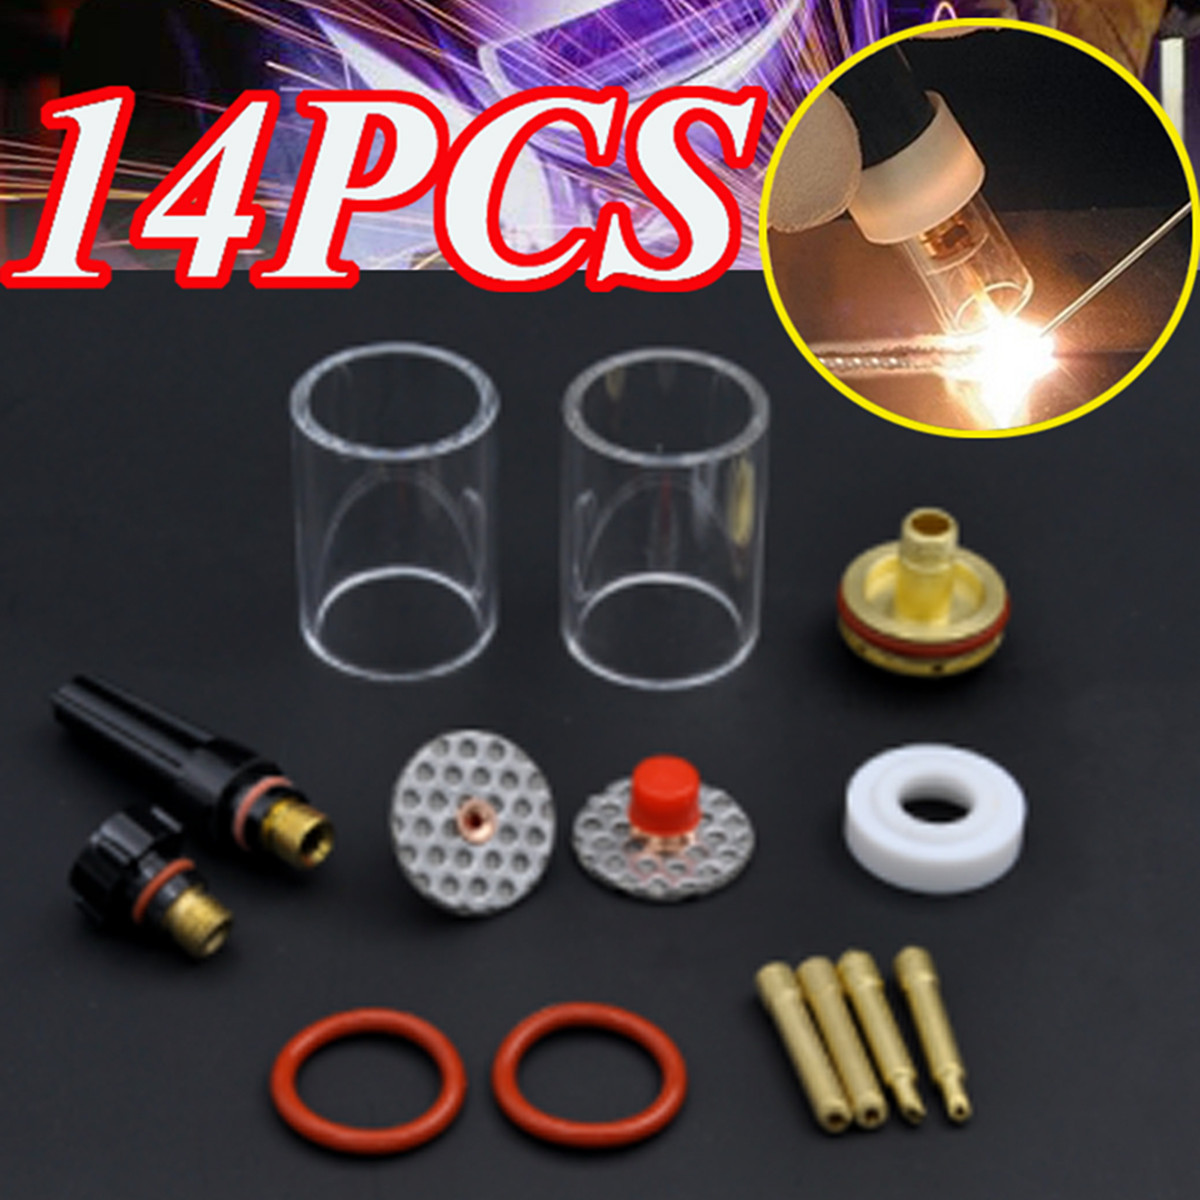 Hot Sale 14PCS TIG Welding Torch Stubby Gas Lens Glass Pyrex Cup Kit 3.2mm 1/8 For WP17/18/26 Welding Series 1set 14pcs tig welding torch stubby gas lens glass pyrex cup kit 3 2mm 1 8 for wp17 18 26 welding series